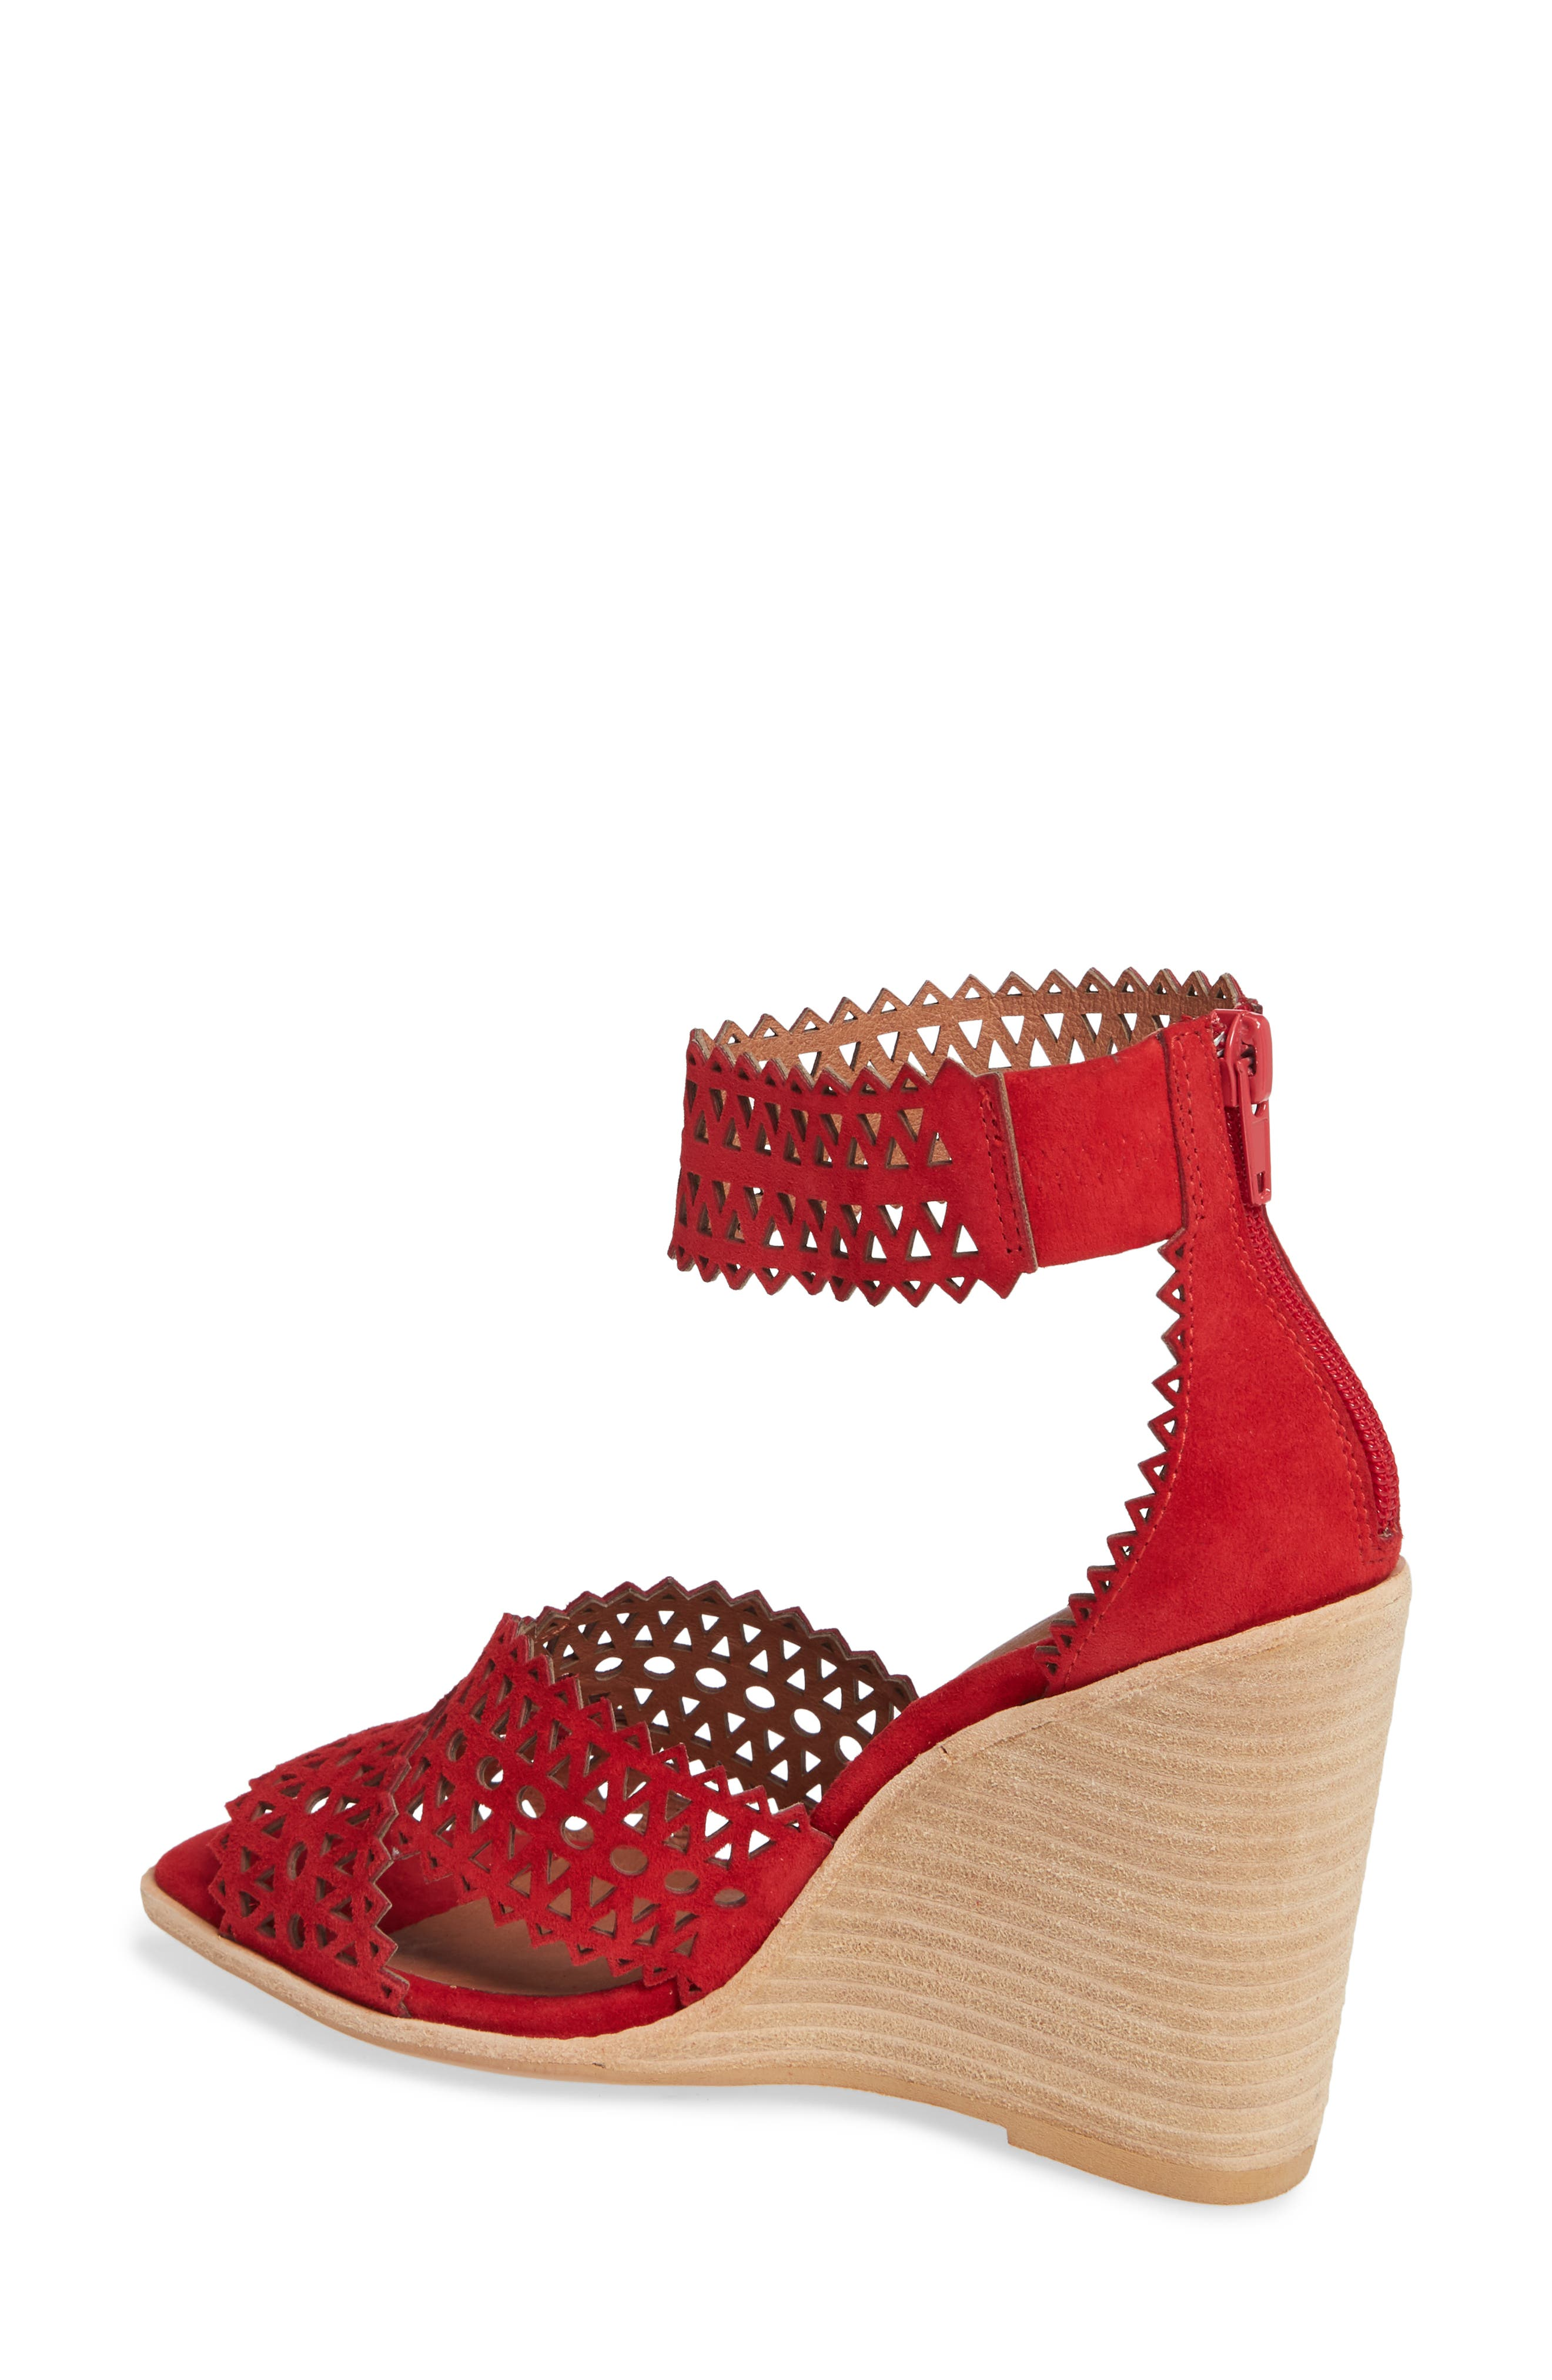 Besante Perforated Wedge Sandal,                             Alternate thumbnail 2, color,                             600